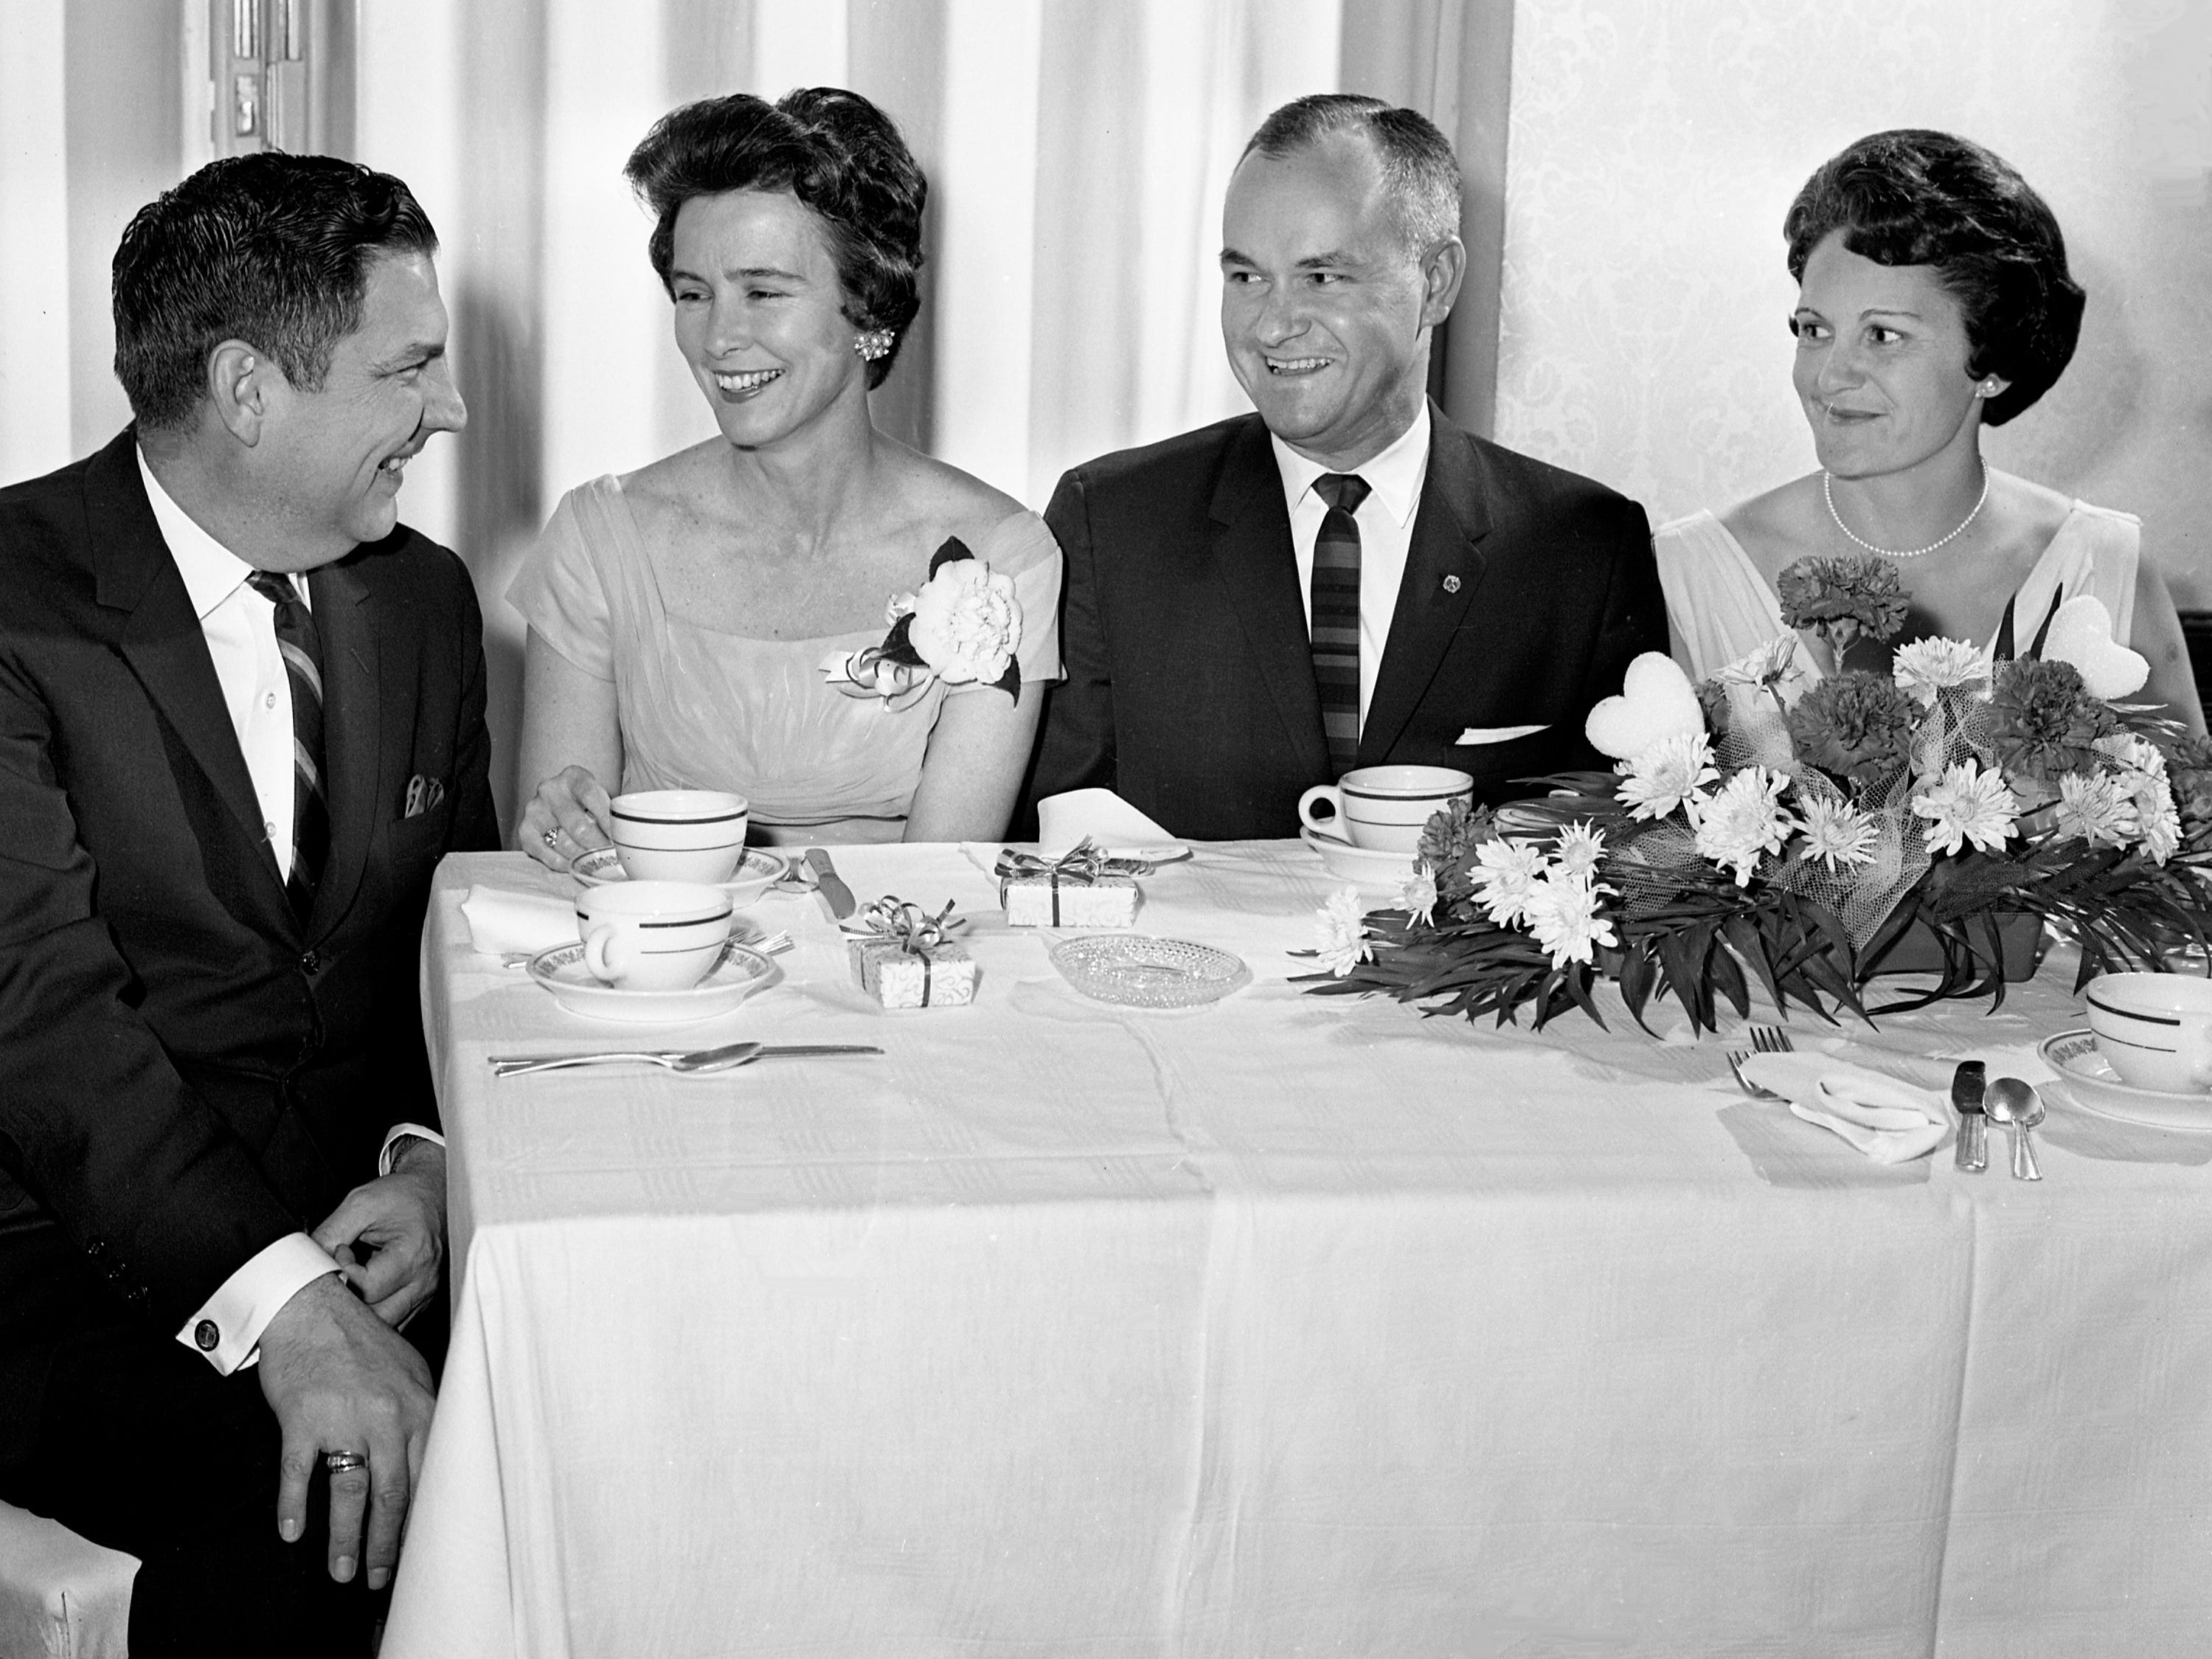 Richland Country Club is the scene of the Lions Club annual Valentine Party on Feb. 13, 1964. Dining together are Mr. and Mrs. Gayle Gupton, left, and Mr. and Mrs. Daniel M. Van Sant.